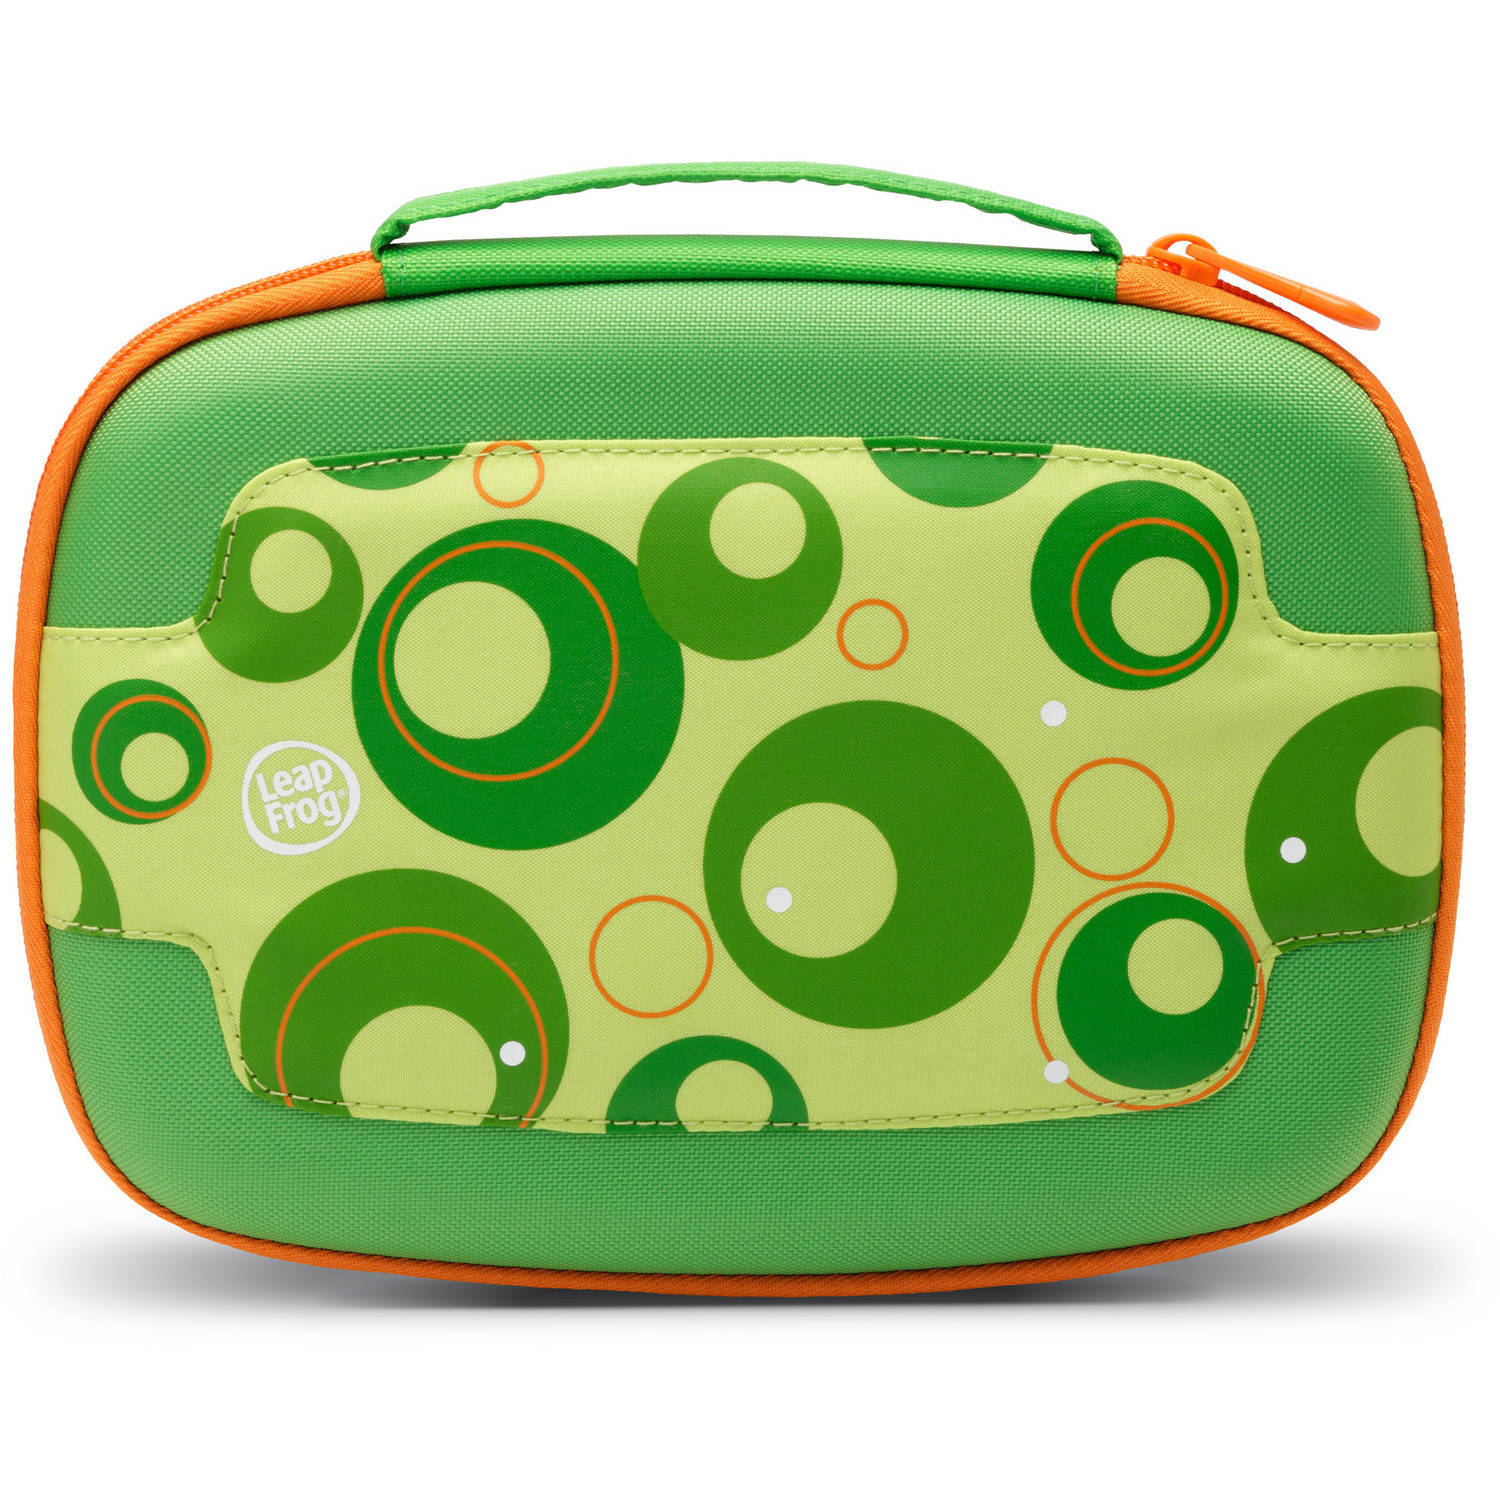 "LeapFrog ELA 7"" Carrying Case, Green by LeapFrog"